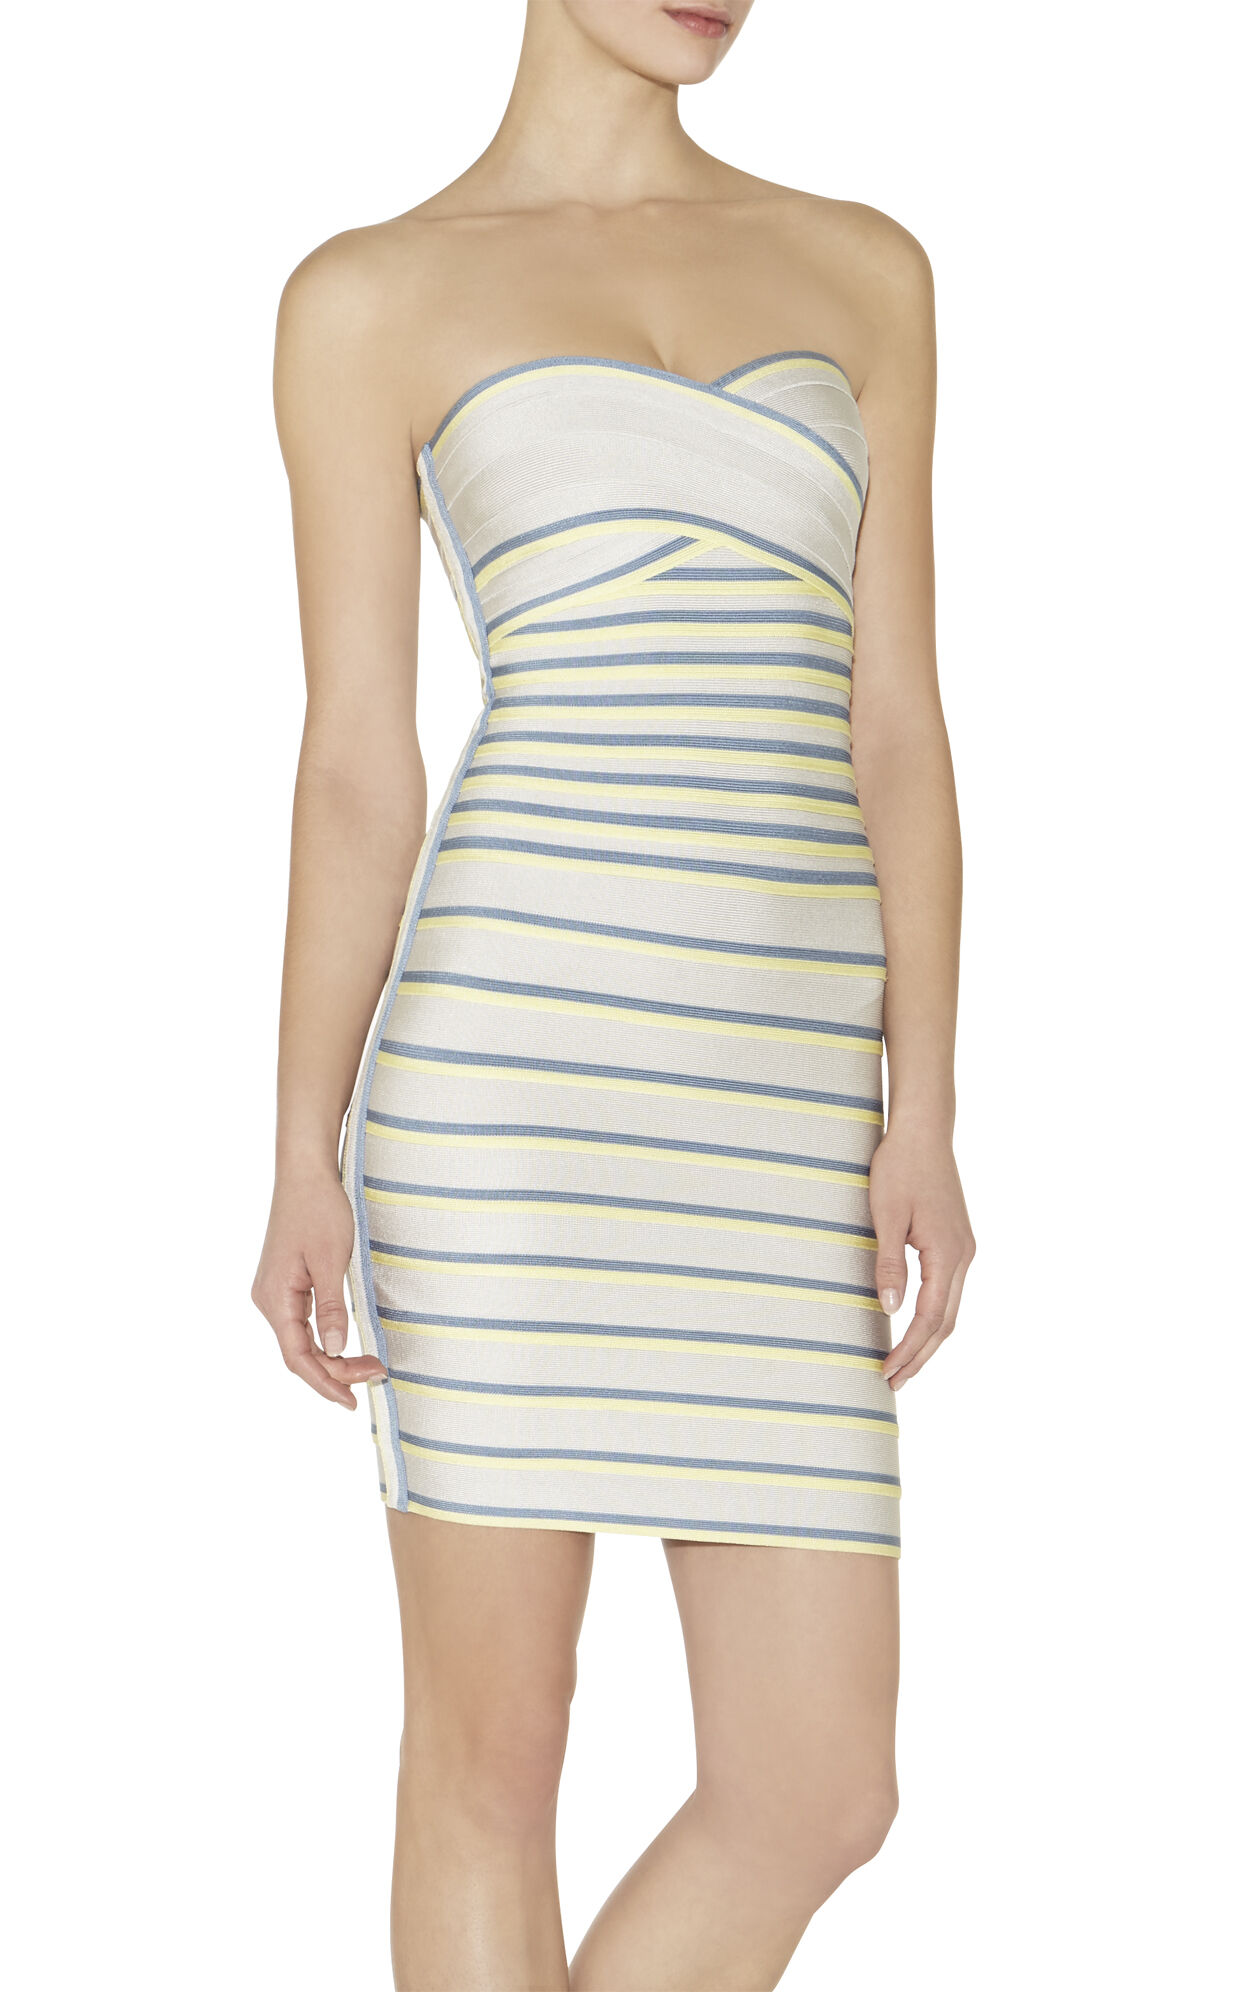 Izzi Multi-Colorblocked Dress